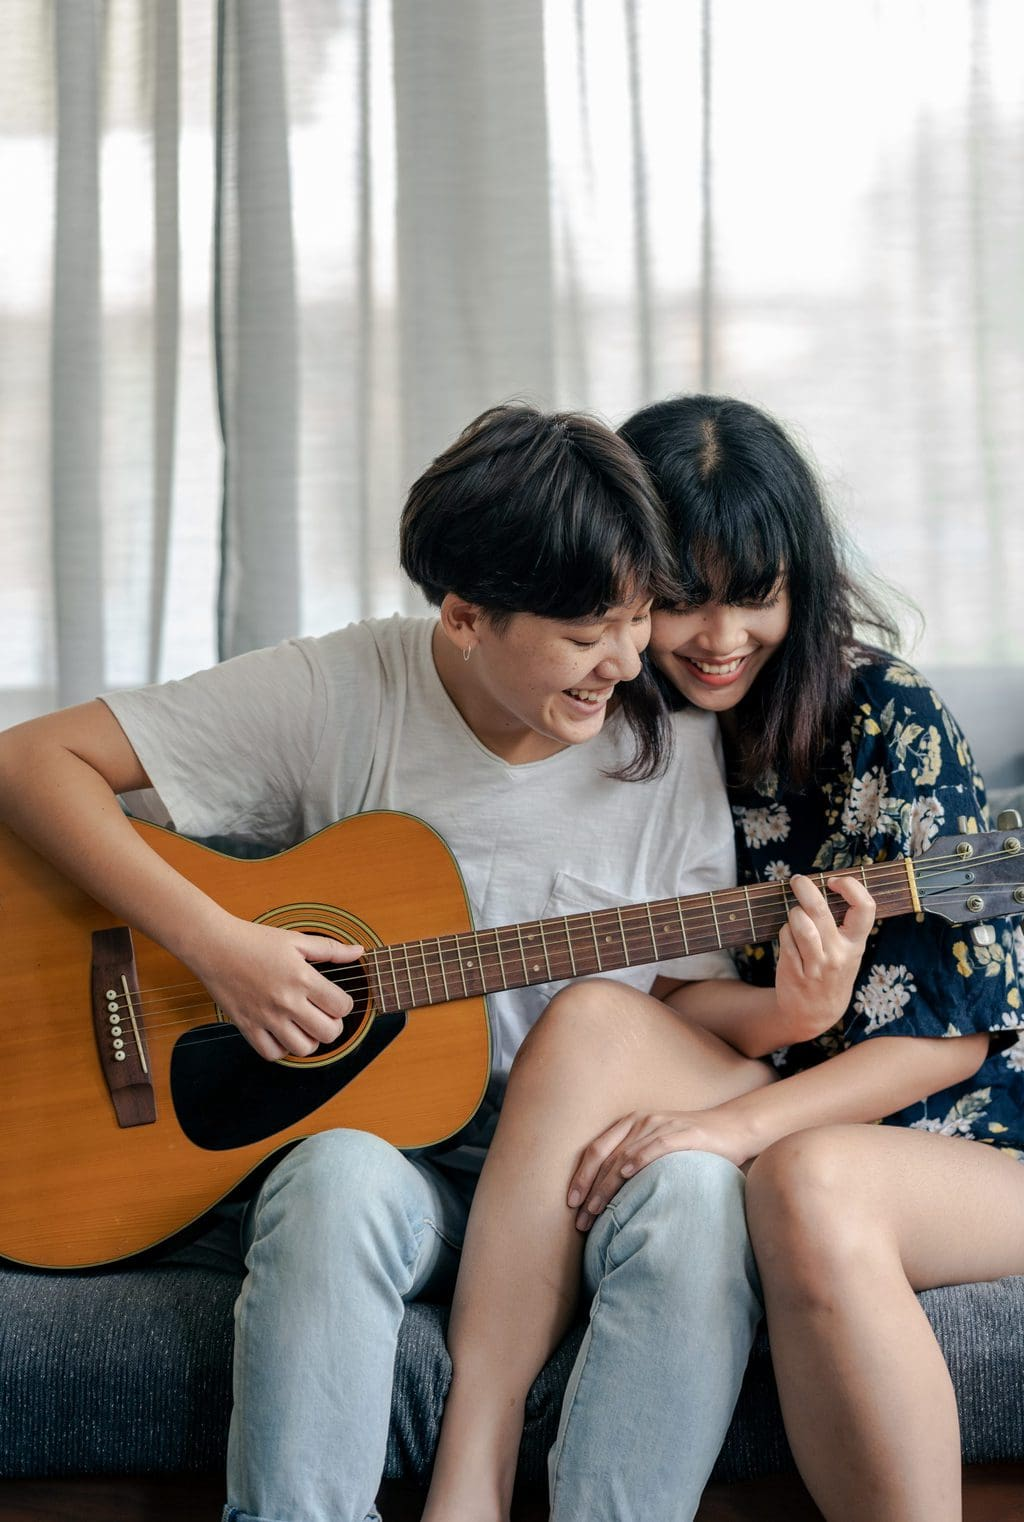 at home date ideas couple playing guitar together  source: Pexels